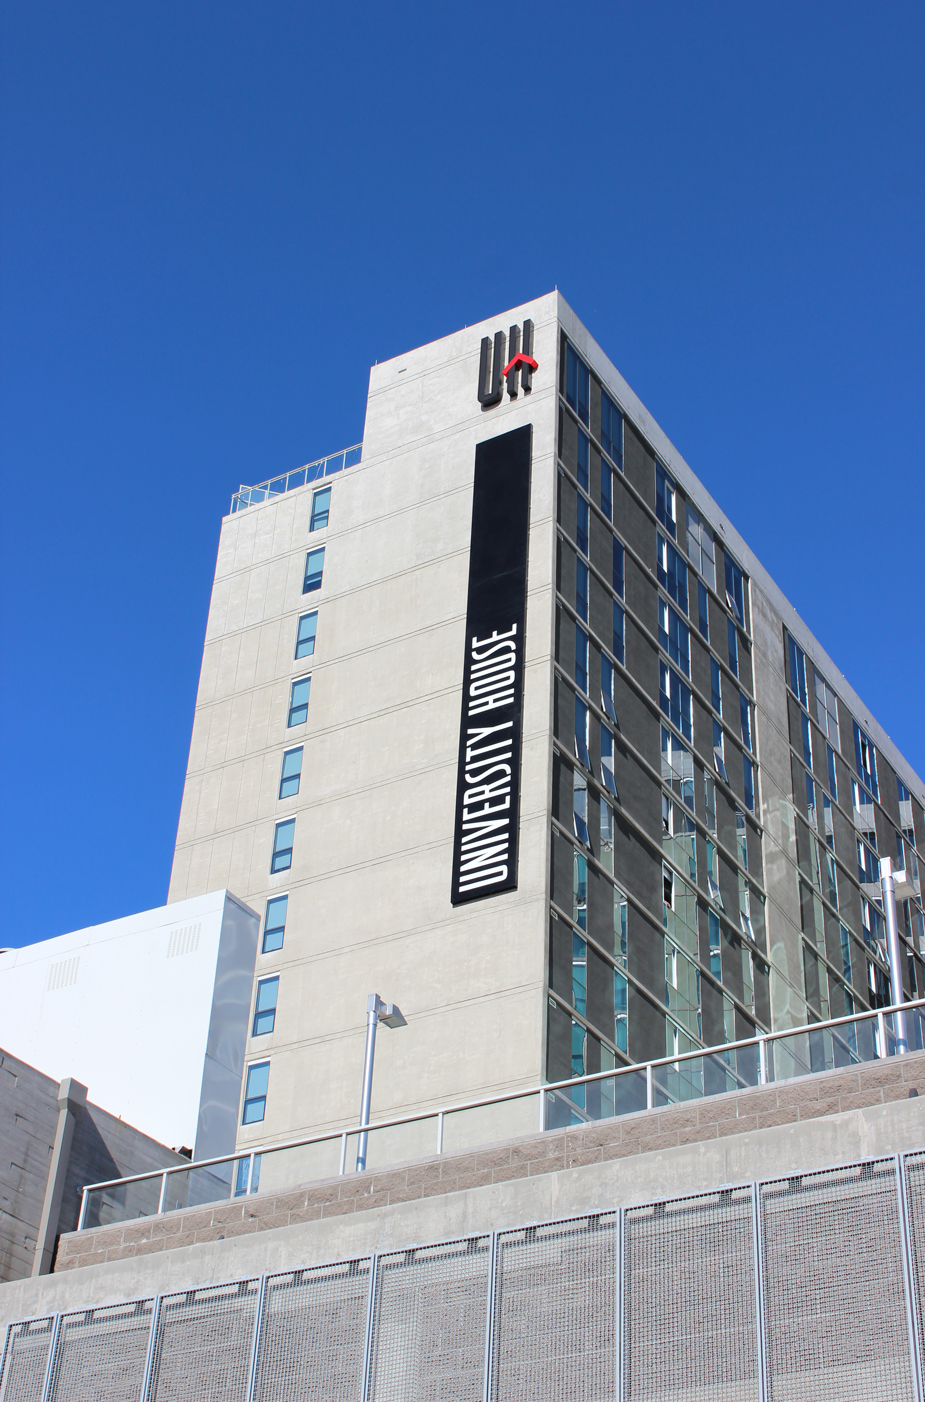 University House's logo is illuminated as a building top sign. The over 80' long sign can be seen from across the ASU campus in Downtown Tempe.